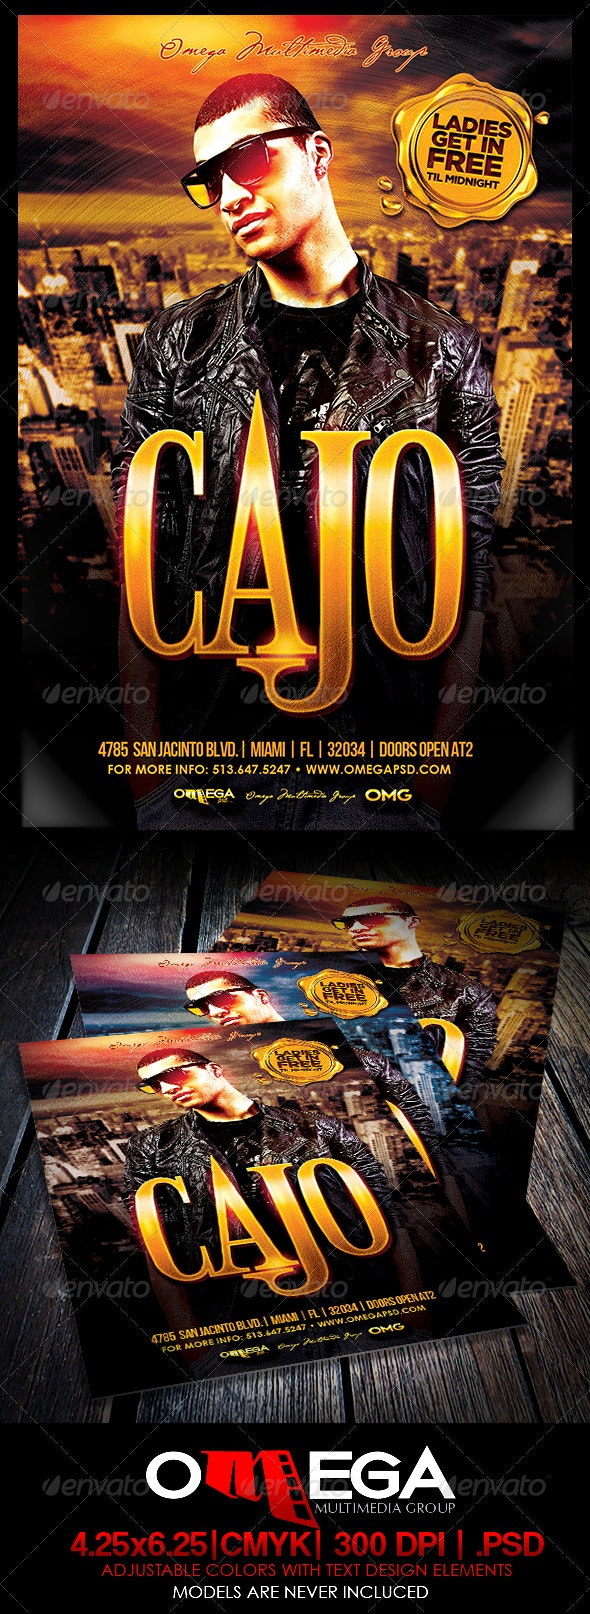 Special Guest Cajo - Events Flyers